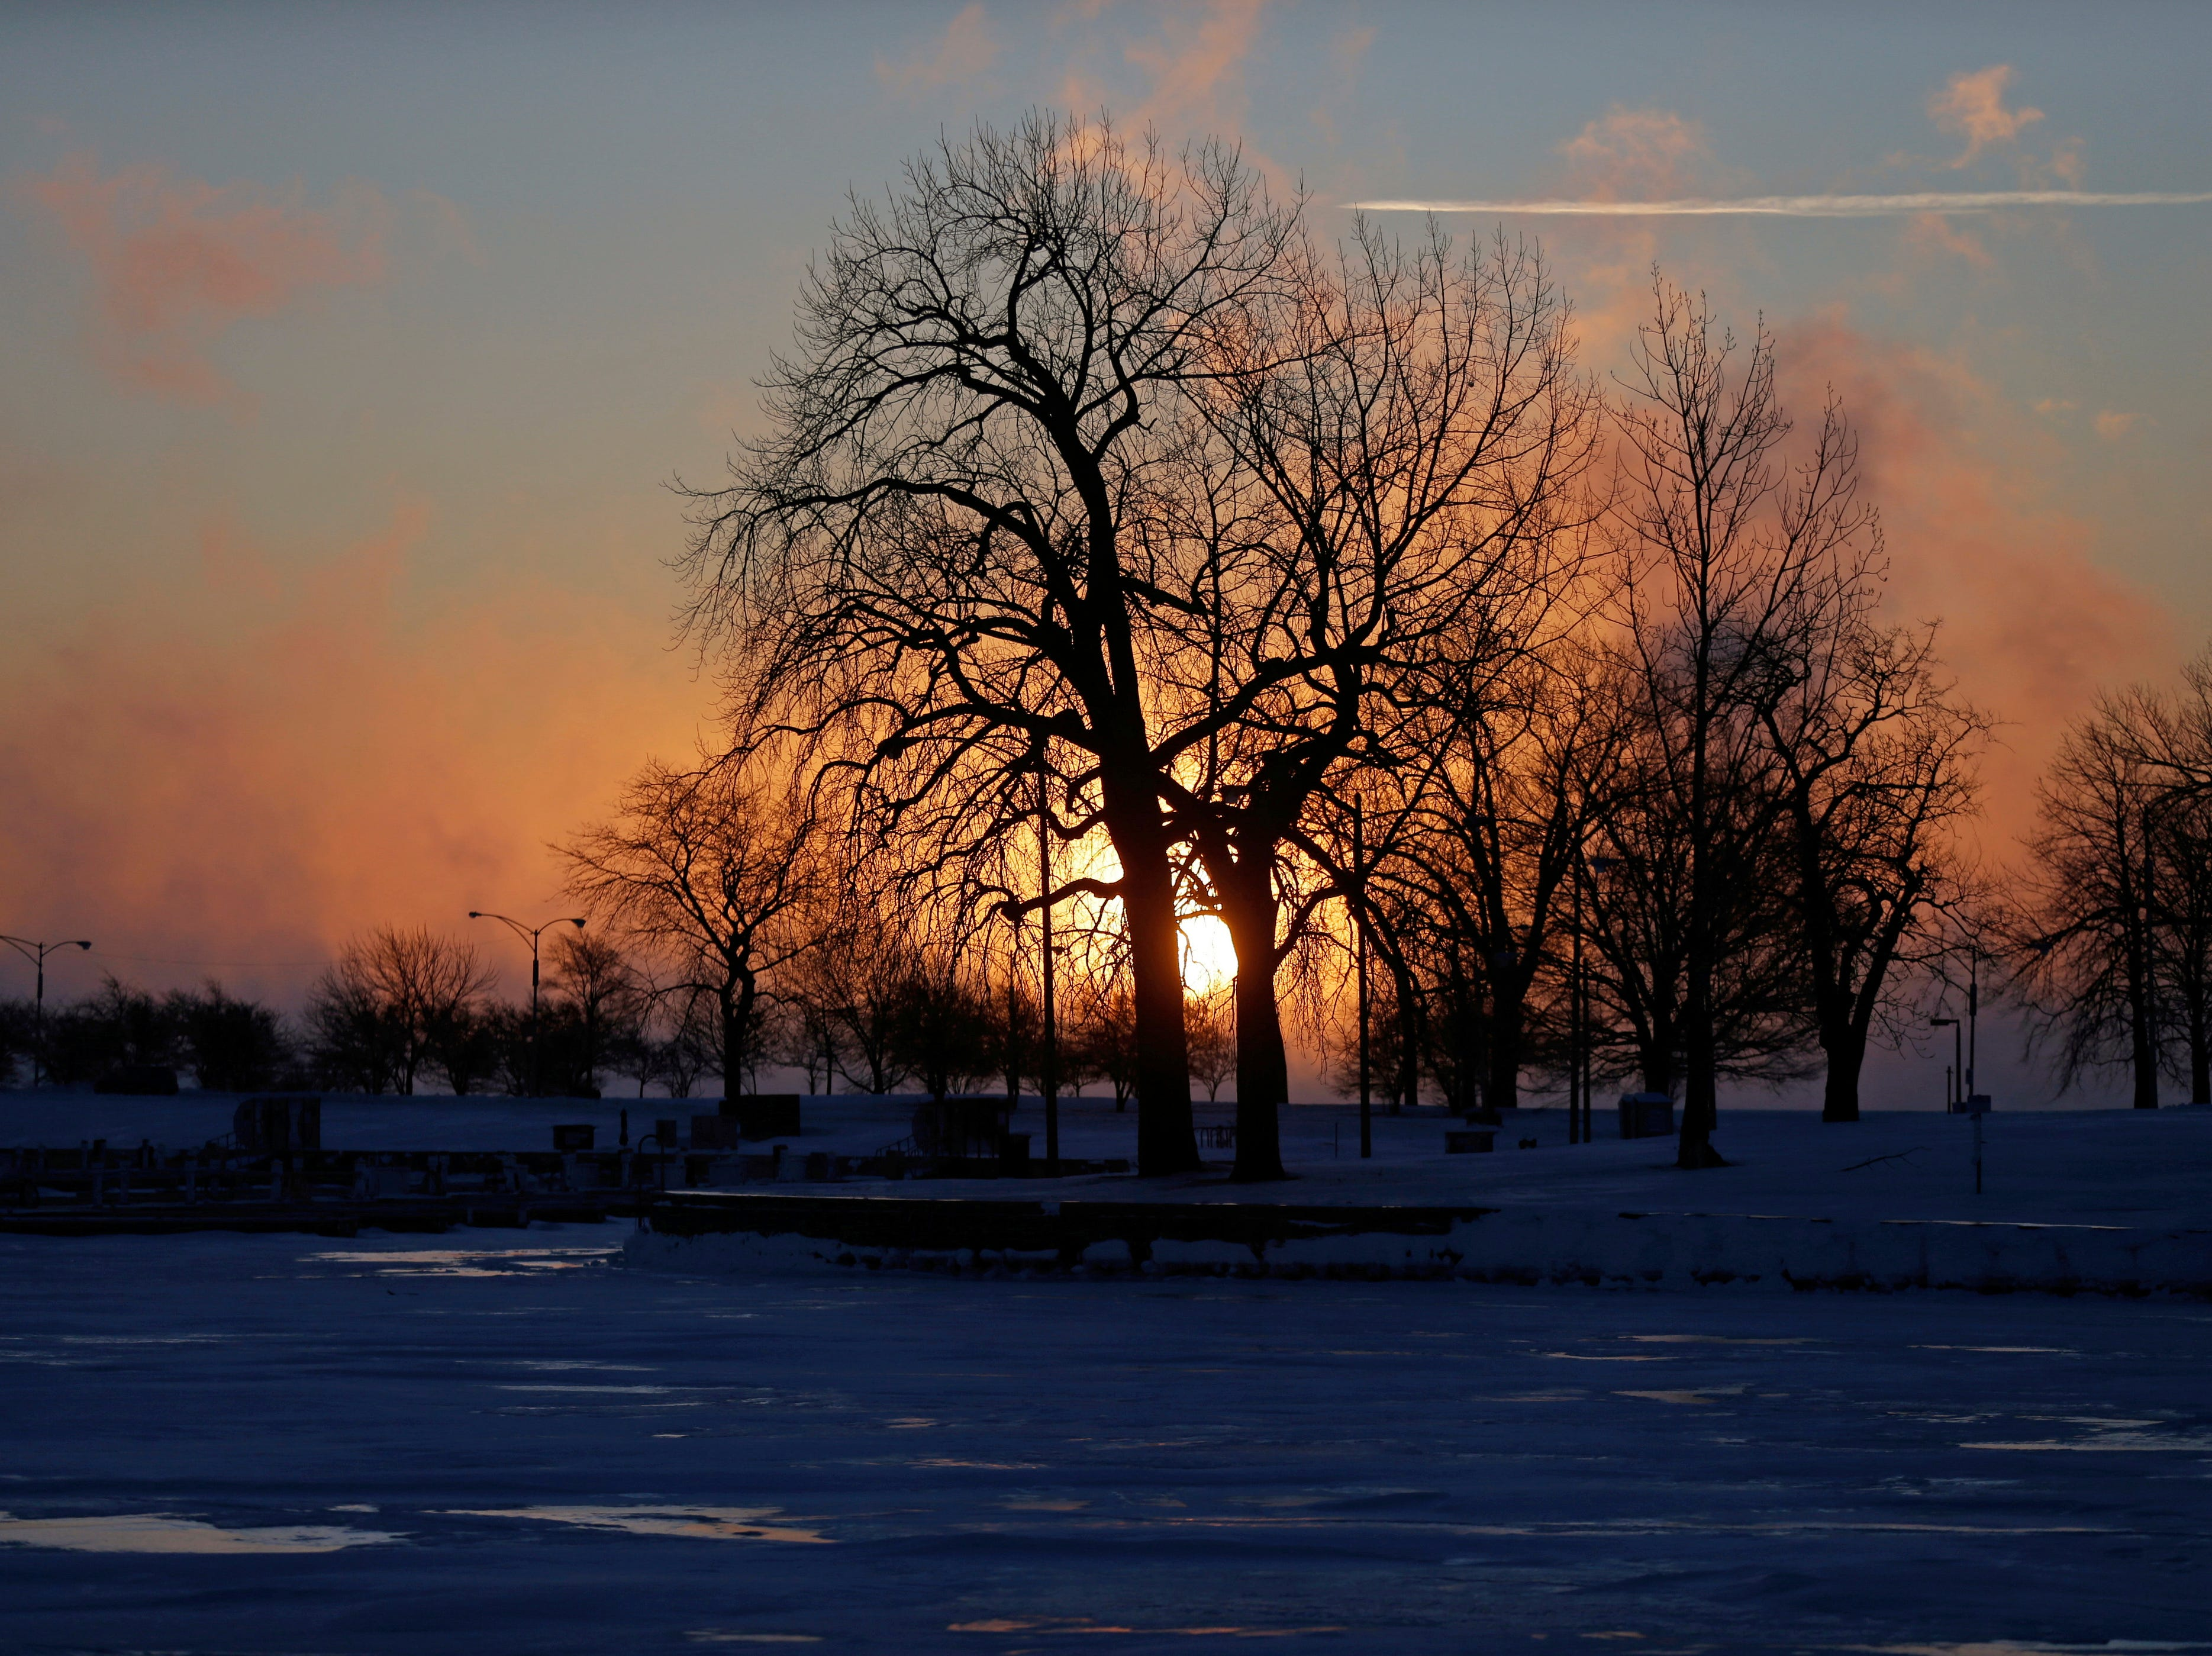 The sun rises behind trees along the shore of Lake Michigan at Montrose Harbor, Thursday, Jan. 31, 2019, in Chicago. The painfully cold weather system that put much of the Midwest into a historic deep freeze was expected to ease Thursday, though temperatures still tumbled to record lows in some places.